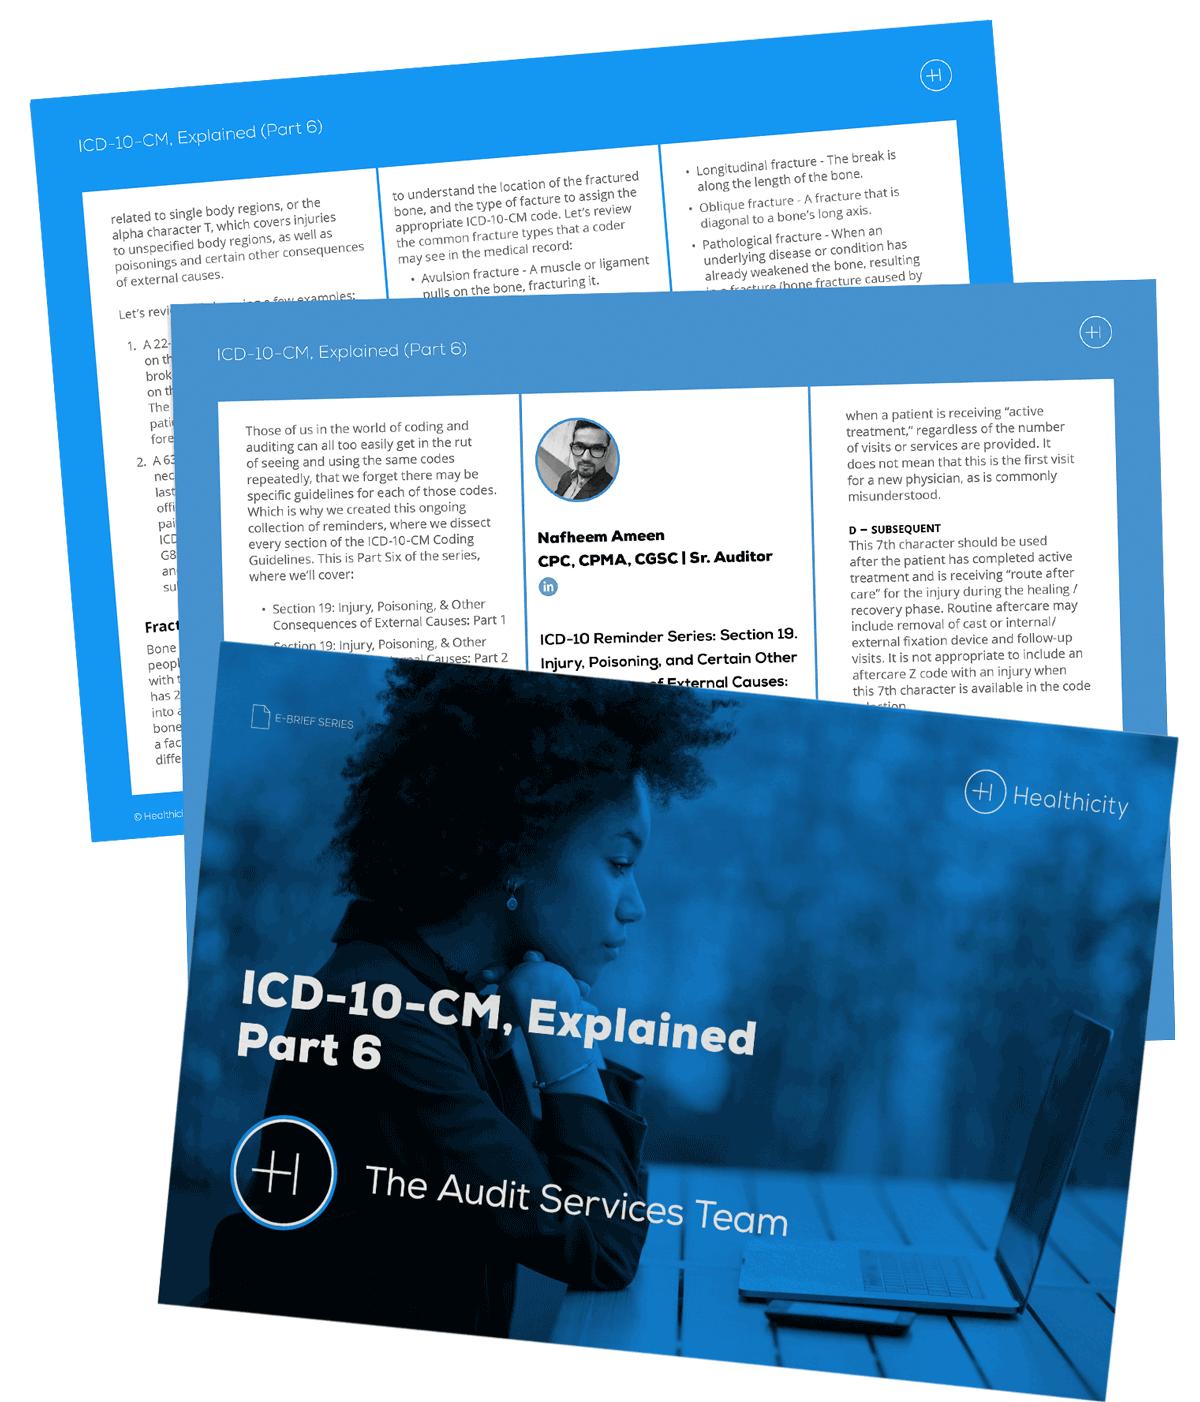 Download the eBrief - ICD-10-CM, Explained (Part 6)